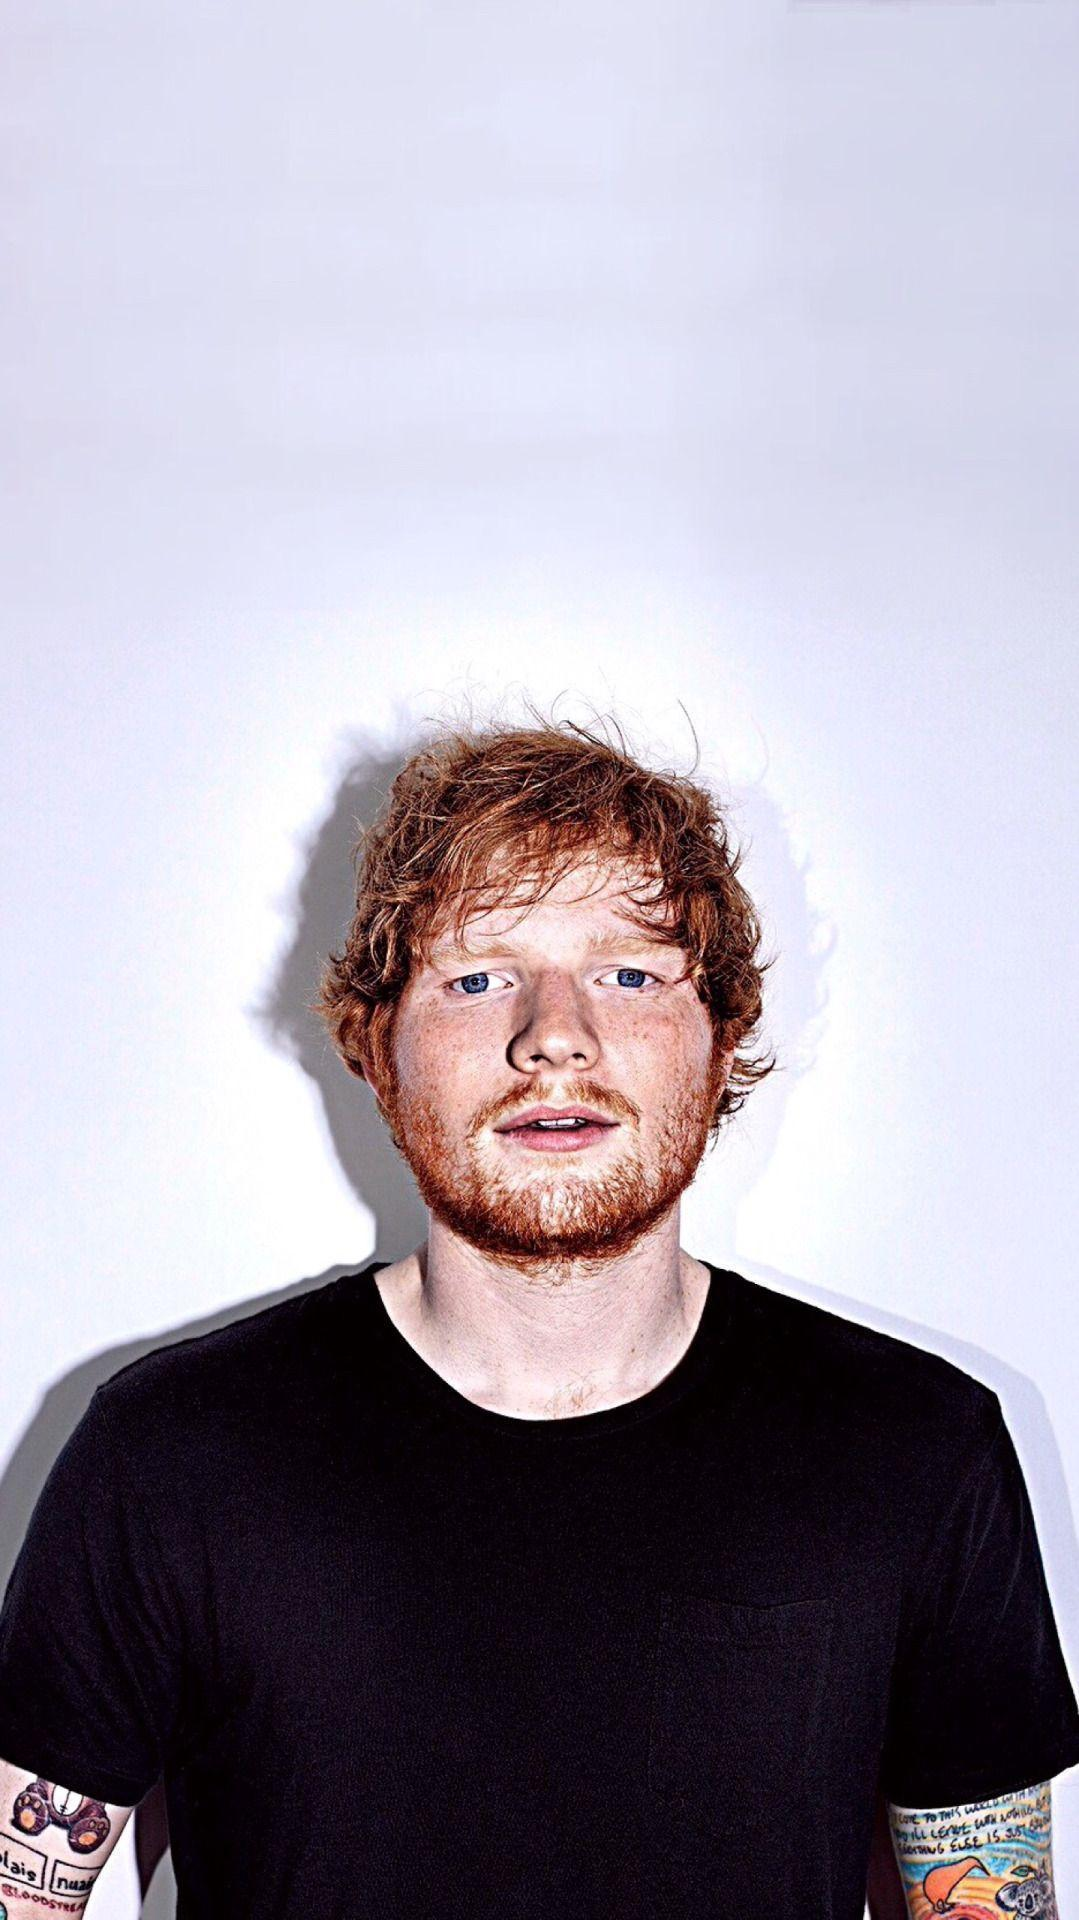 Ed Sheeran Images, Ed Sheeran Wallpapers - Evangelina Gemmill